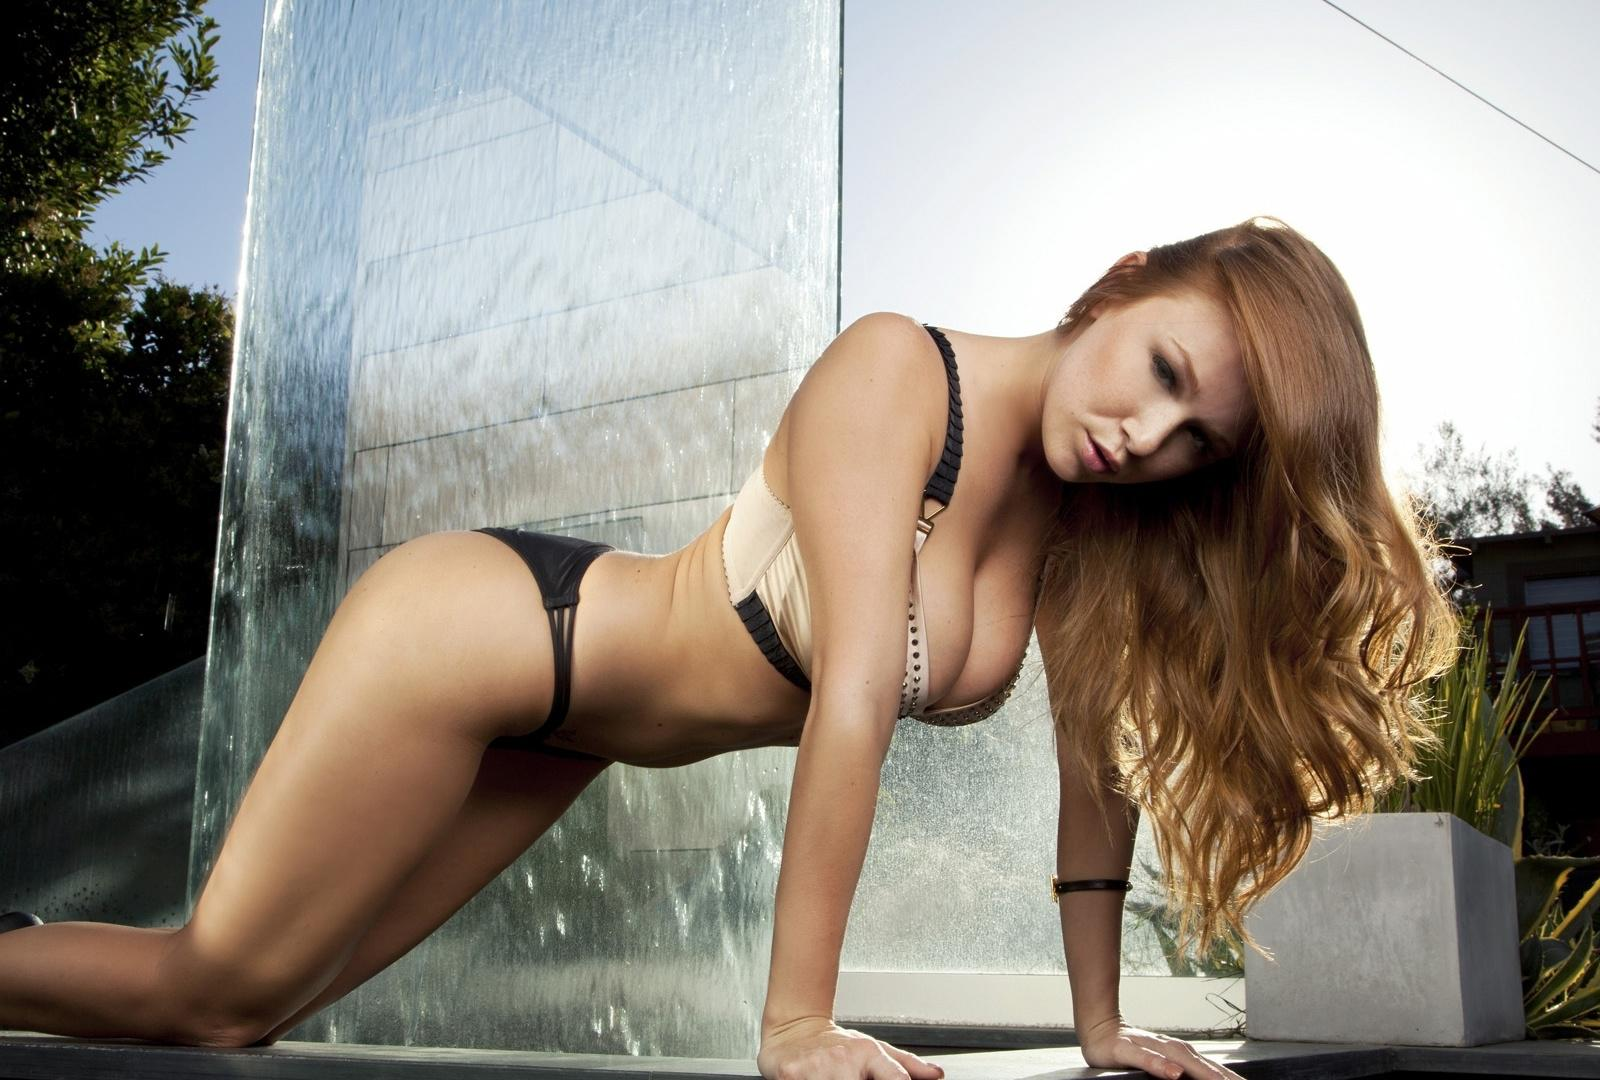 Asians students strip